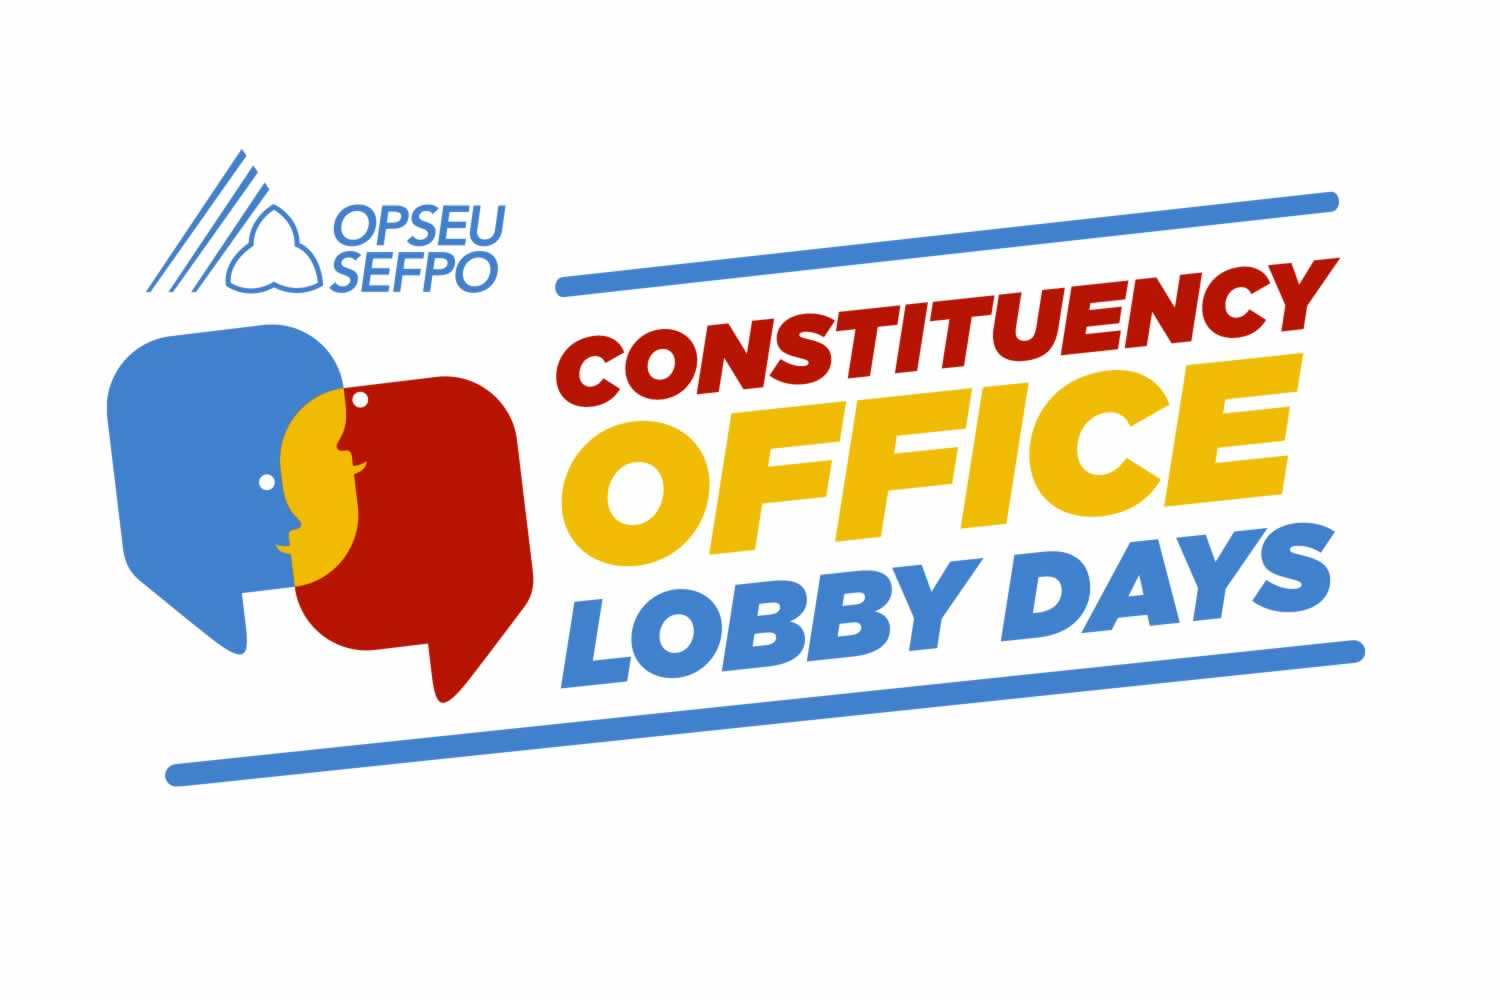 Constituency Office Lobby Days